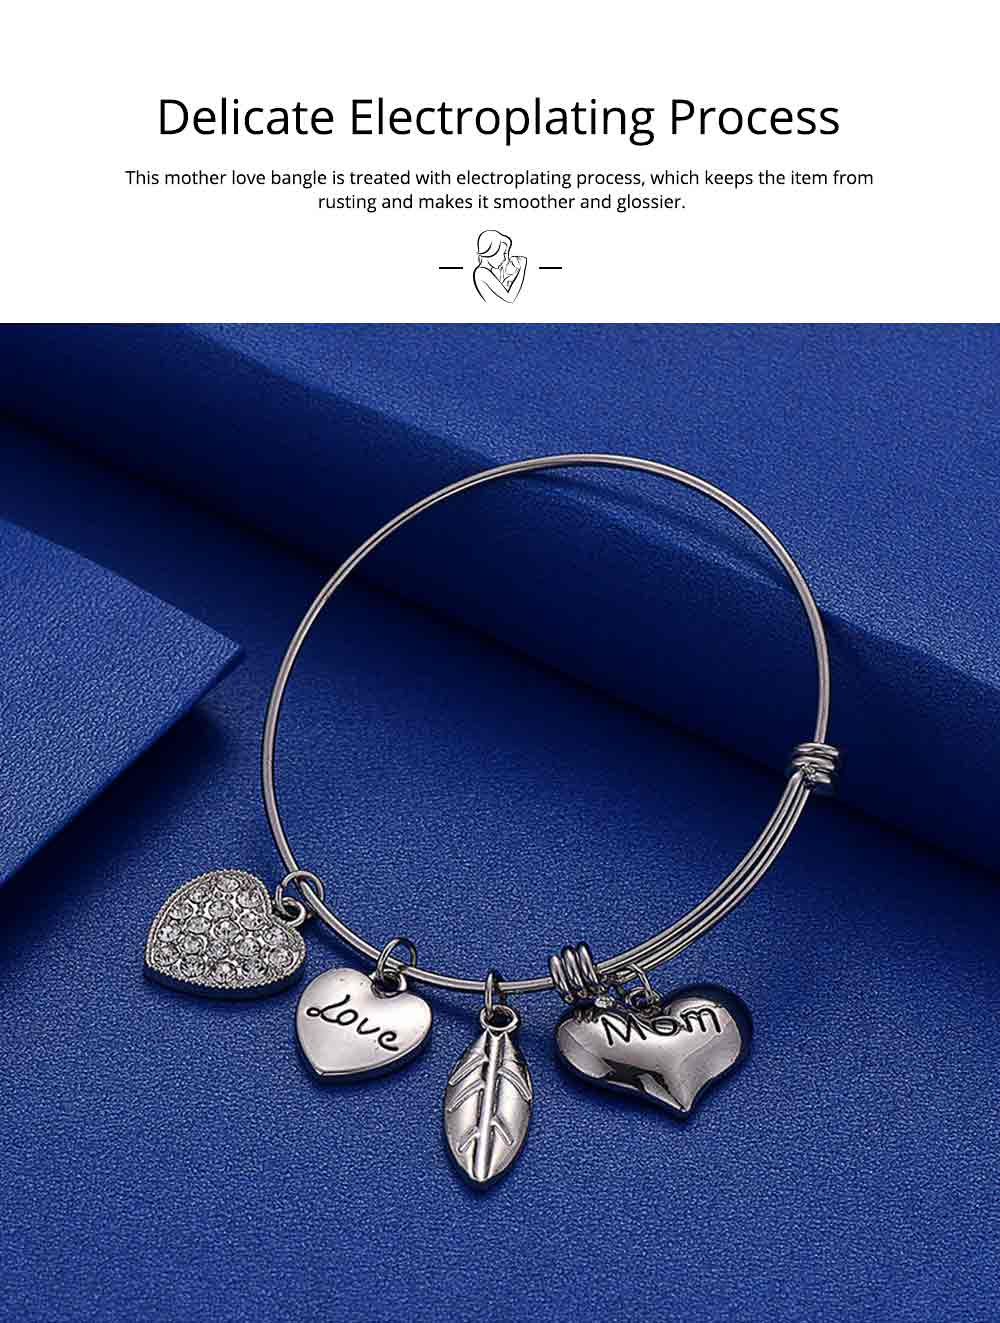 Stylish Heart Model Diamond Drilling Stainless Steel Bracelet, Mother Love Letter Electroplating Adjustable Silver Chain Bangle for Mothers 2